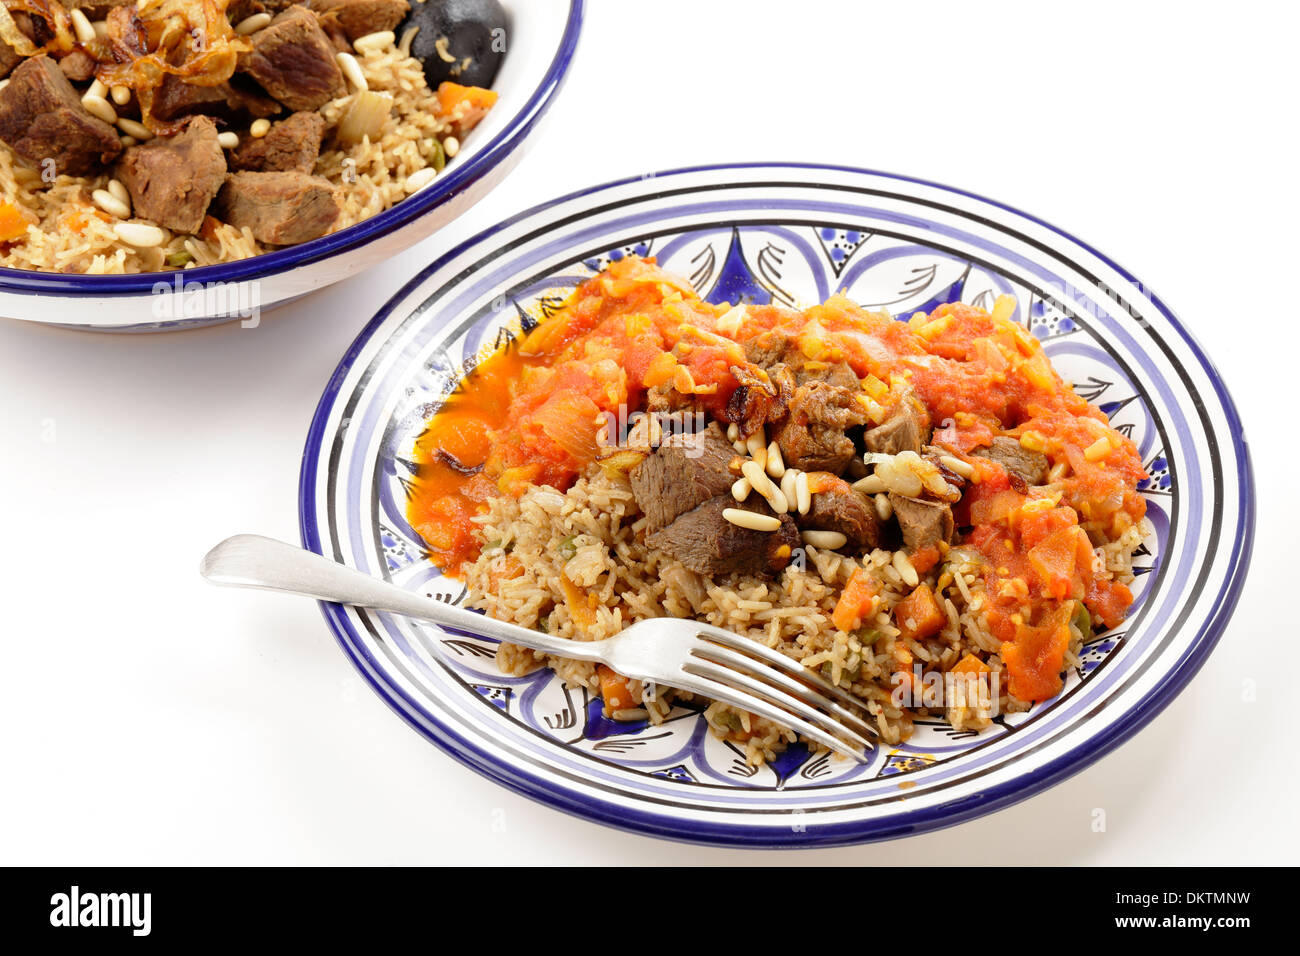 A traditional Saudi Arabian or Gulf Arab meat kabsa meal, - Stock Image